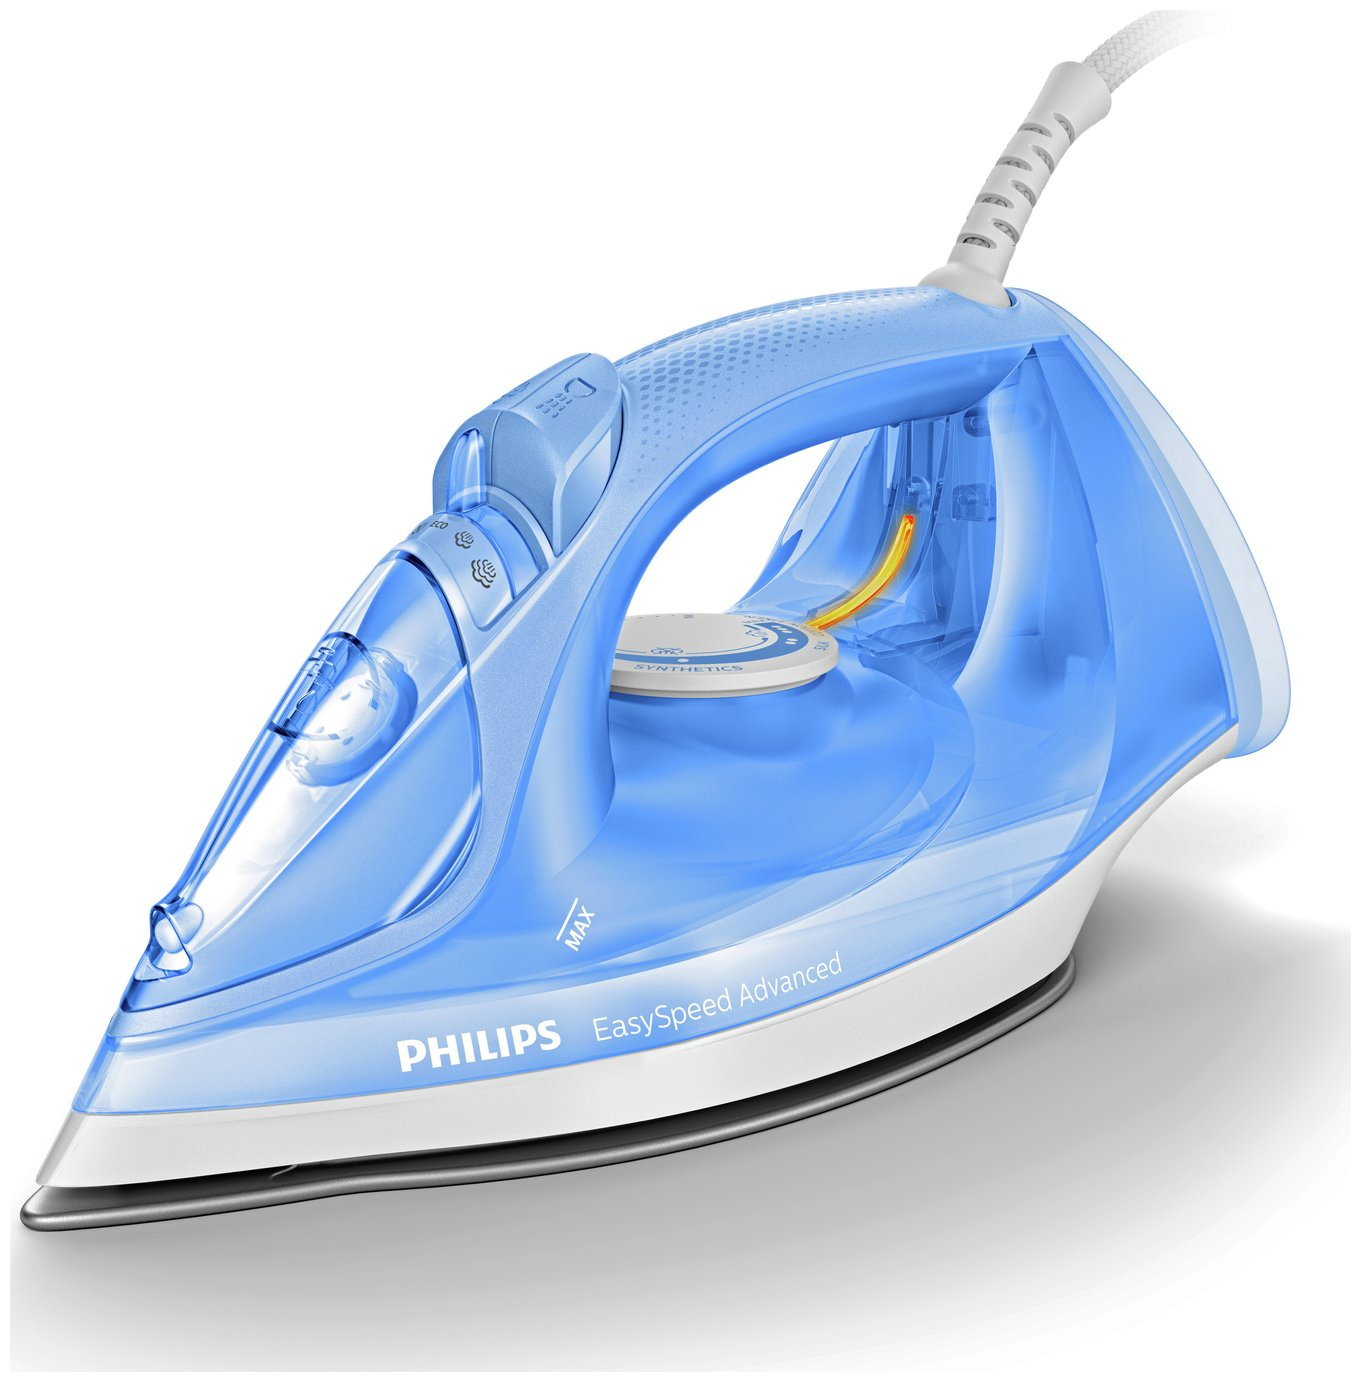 Philips GC2676/29 EasySpeed Advanced Steam Iron from Philips